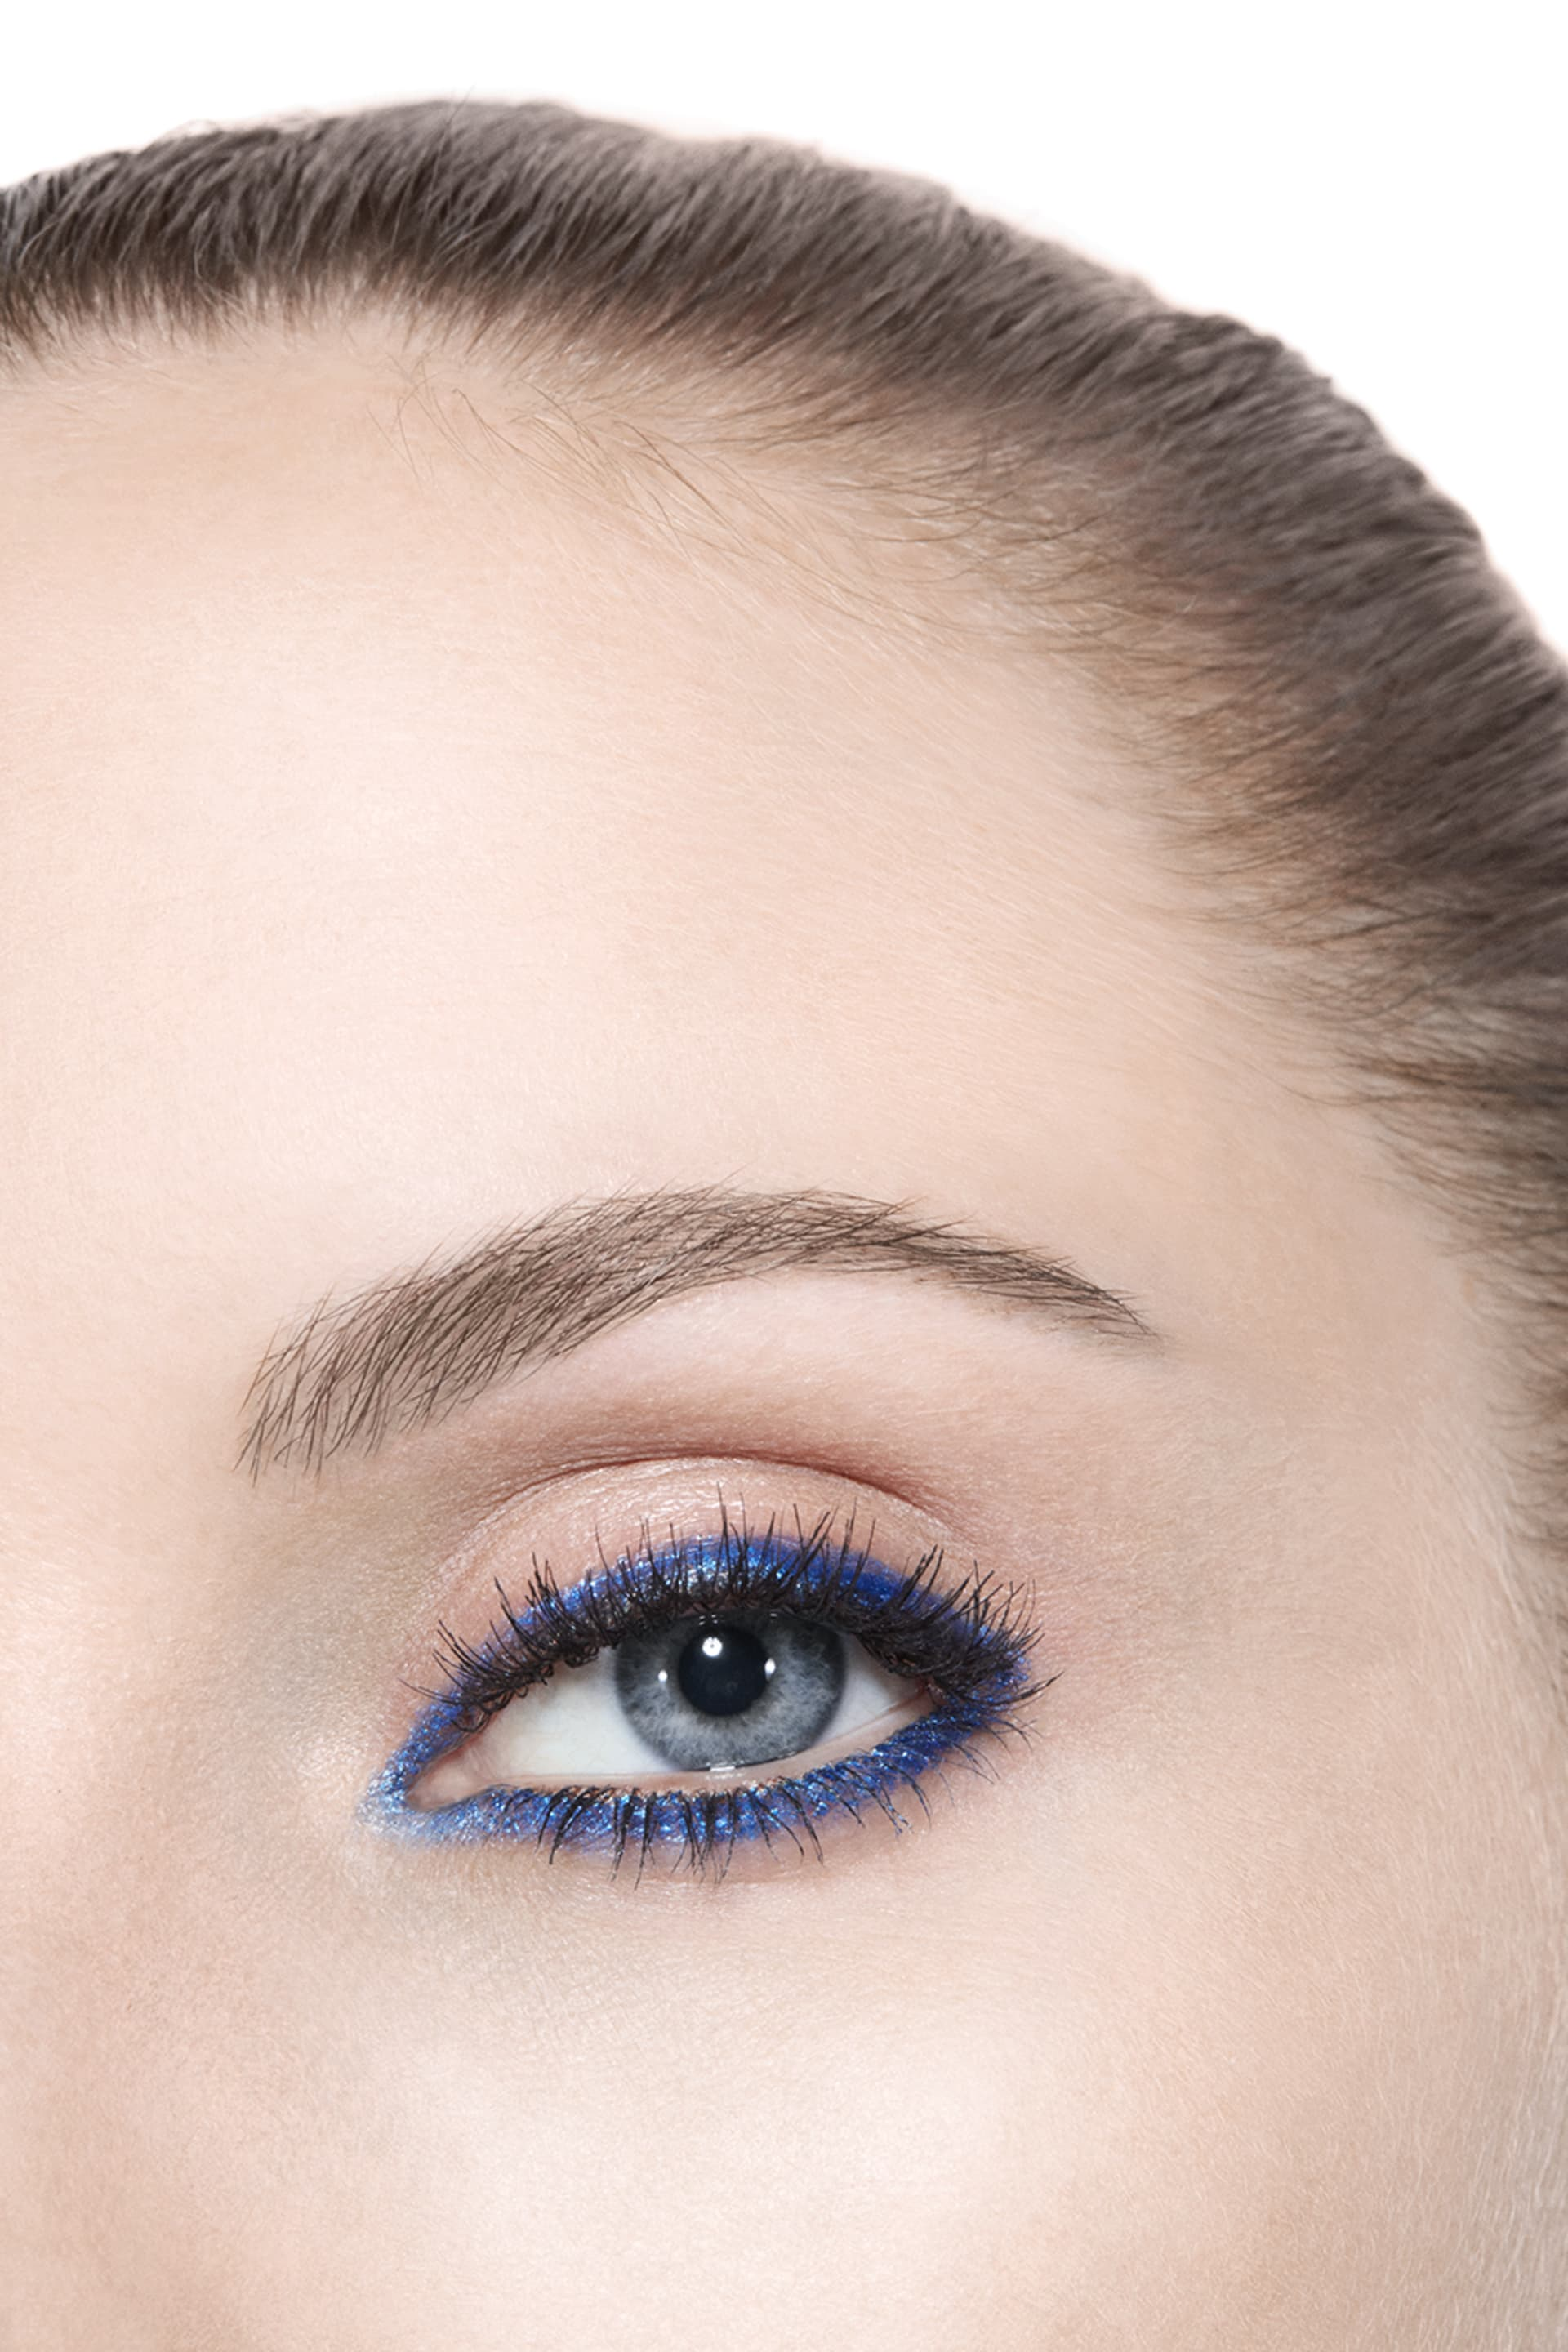 Application makeup visual 3 - STYLO YEUX WATERPROOF 924 - FERVENT BLUE